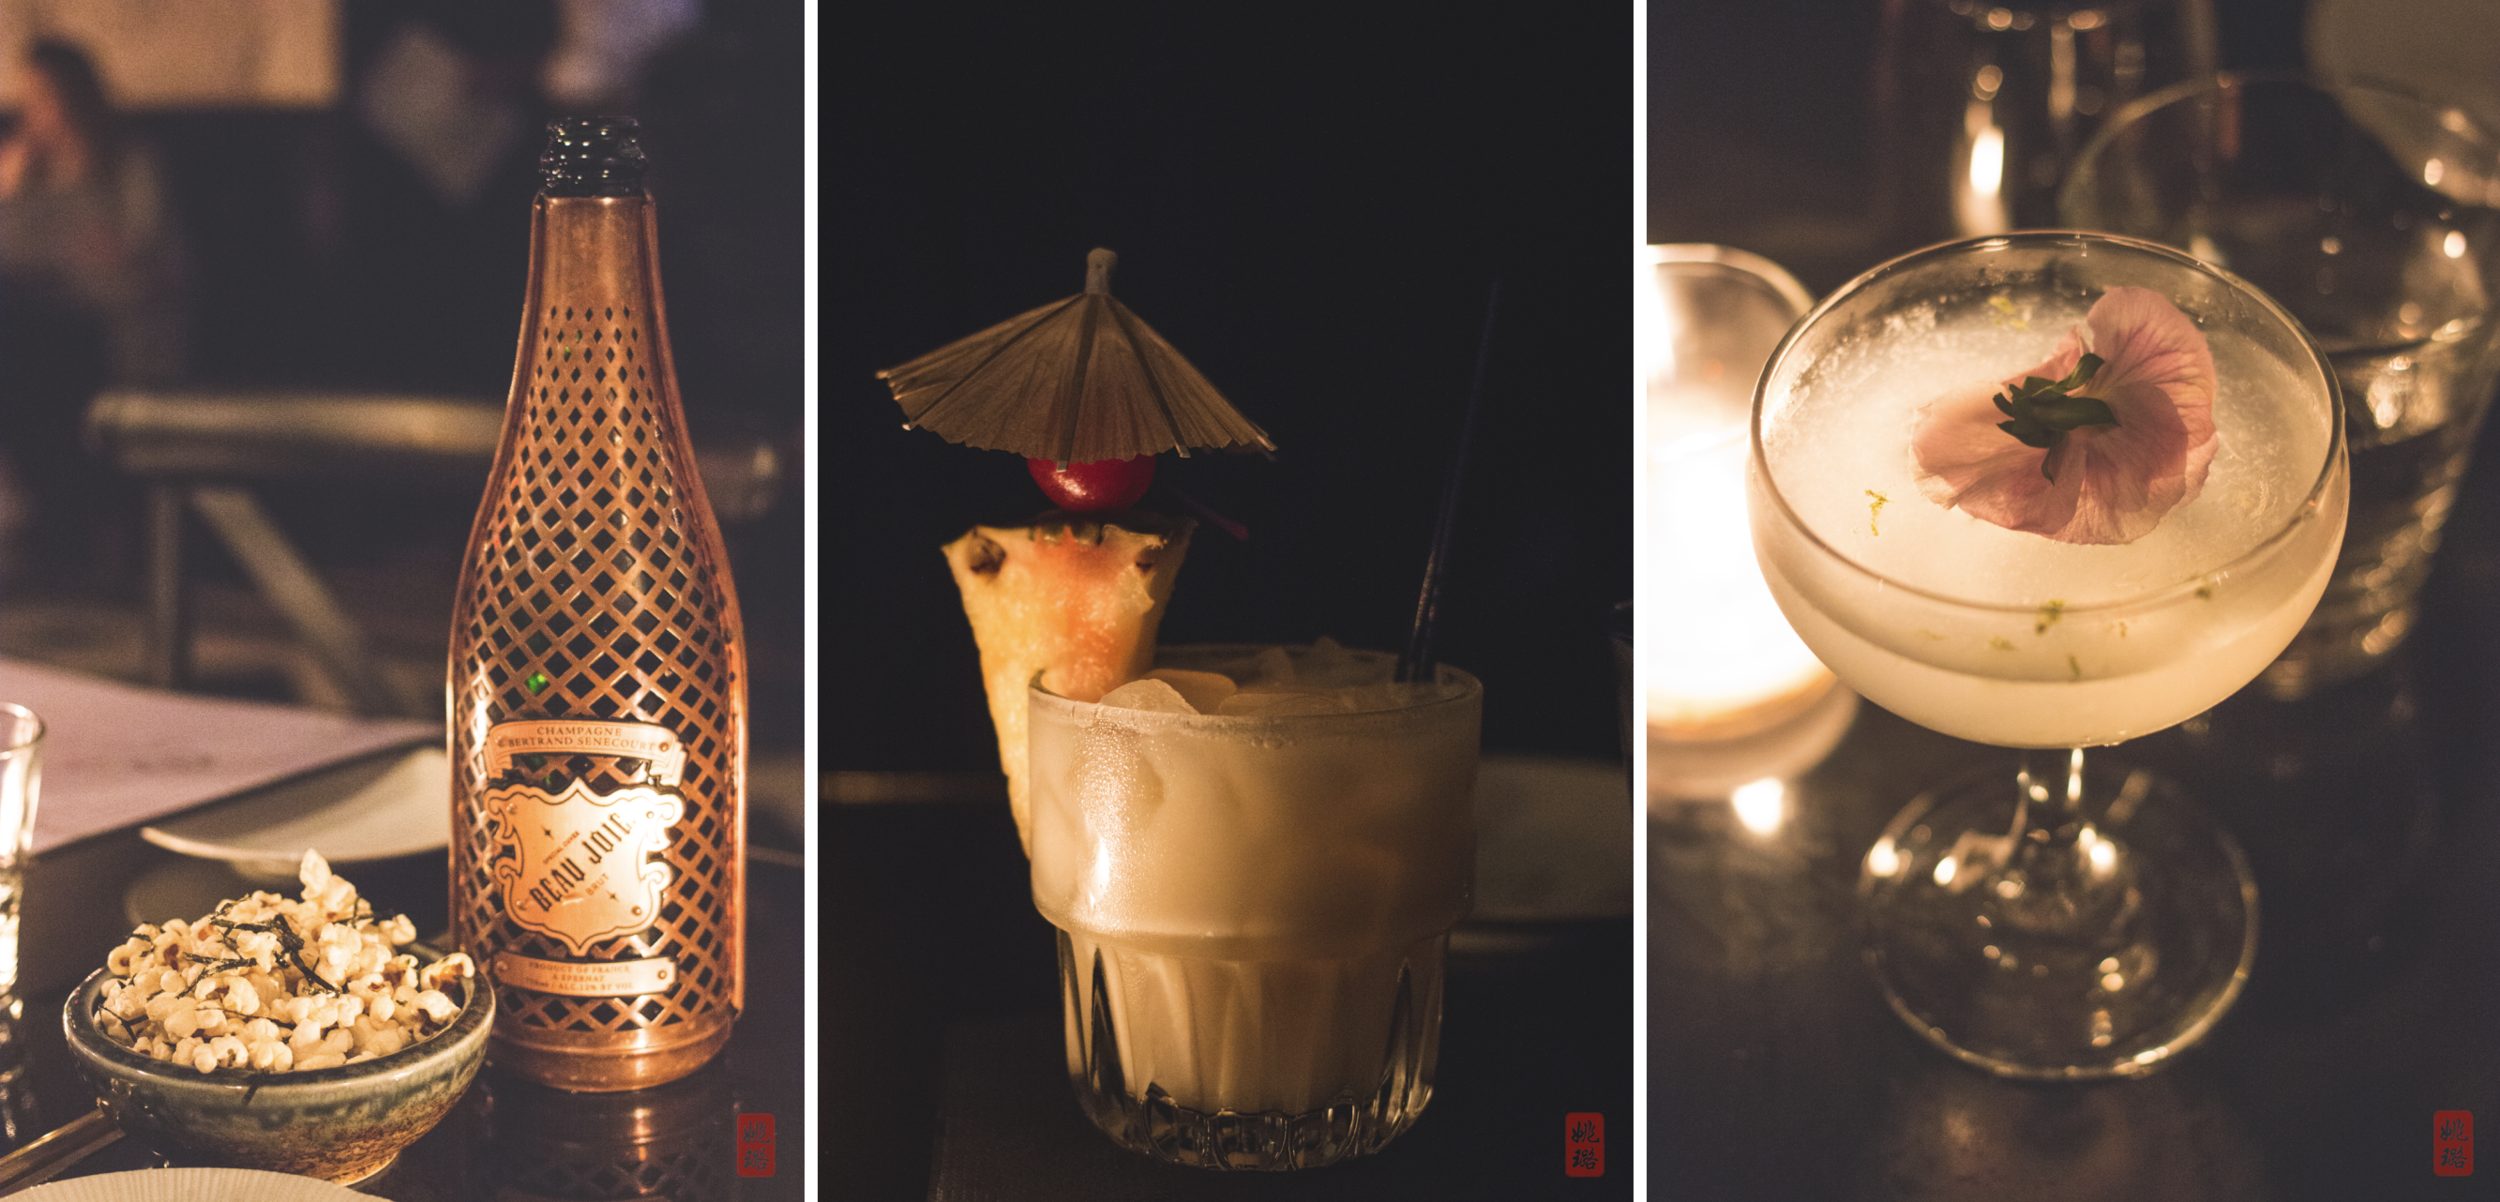 Left: Nori popcorn  Middle:Parrot cries with its body - bumbu rum, fresh pineapple, cream of coconut, yuzu  Right:Mist whispers like woman - titos vodka, korean plum, lime